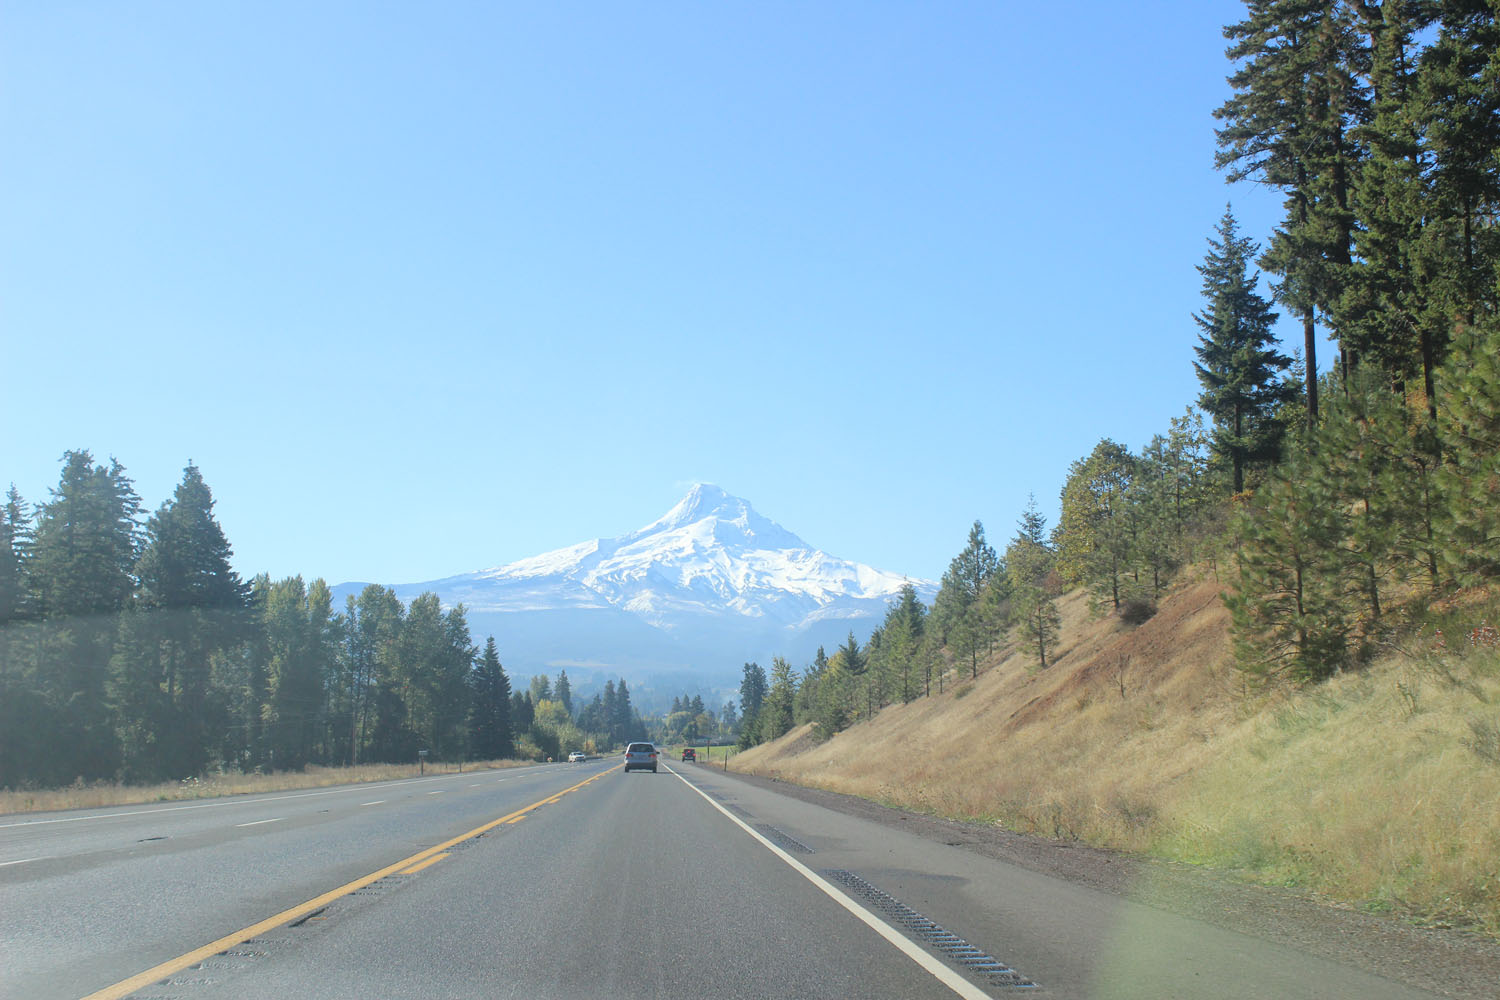 View of Mt. Hood on the way to Hood River